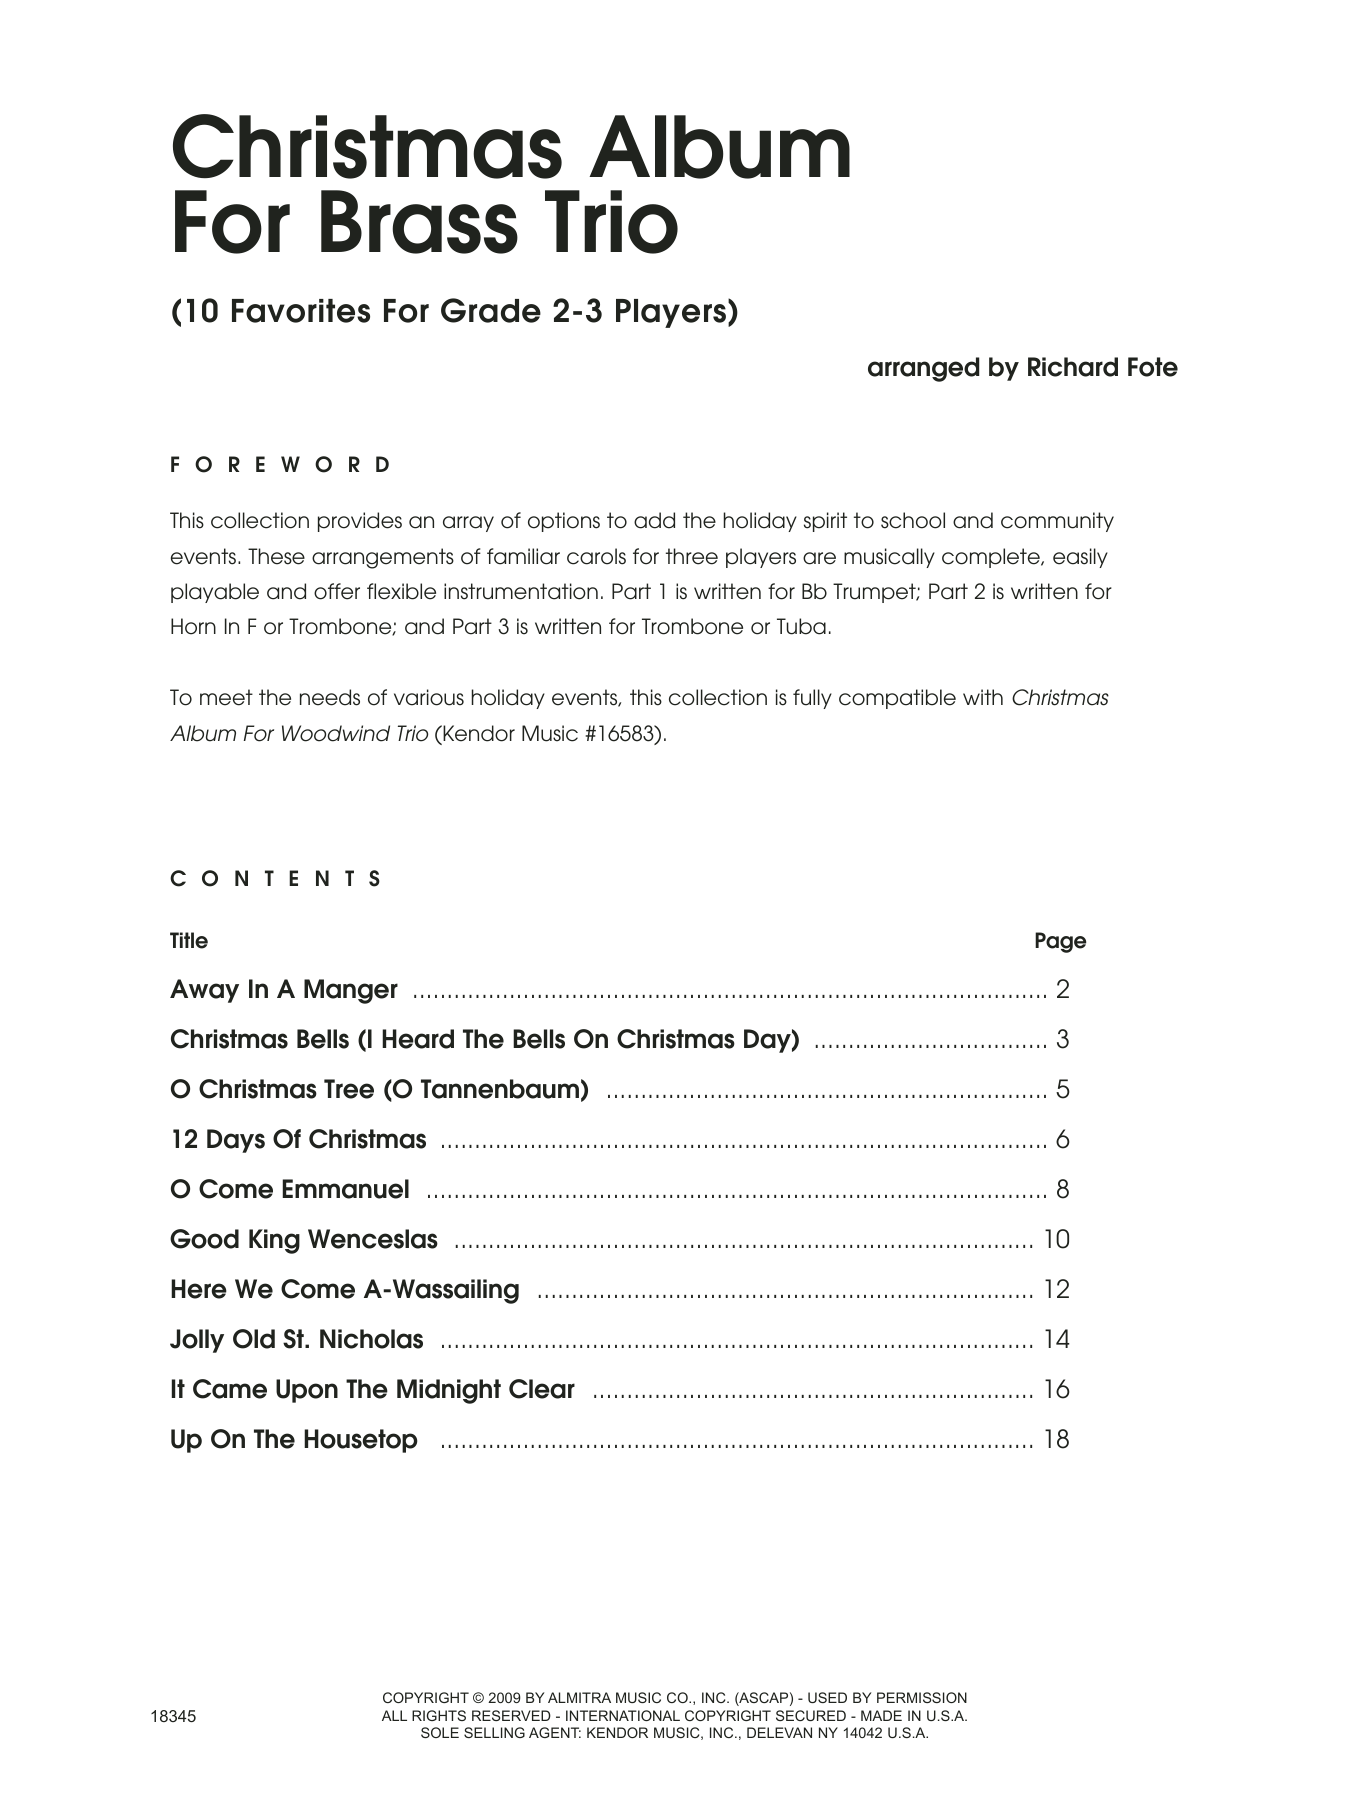 Christmas Album For Brass Trio (COMPLETE) sheet music for brass trio by Fote. Score Image Preview.